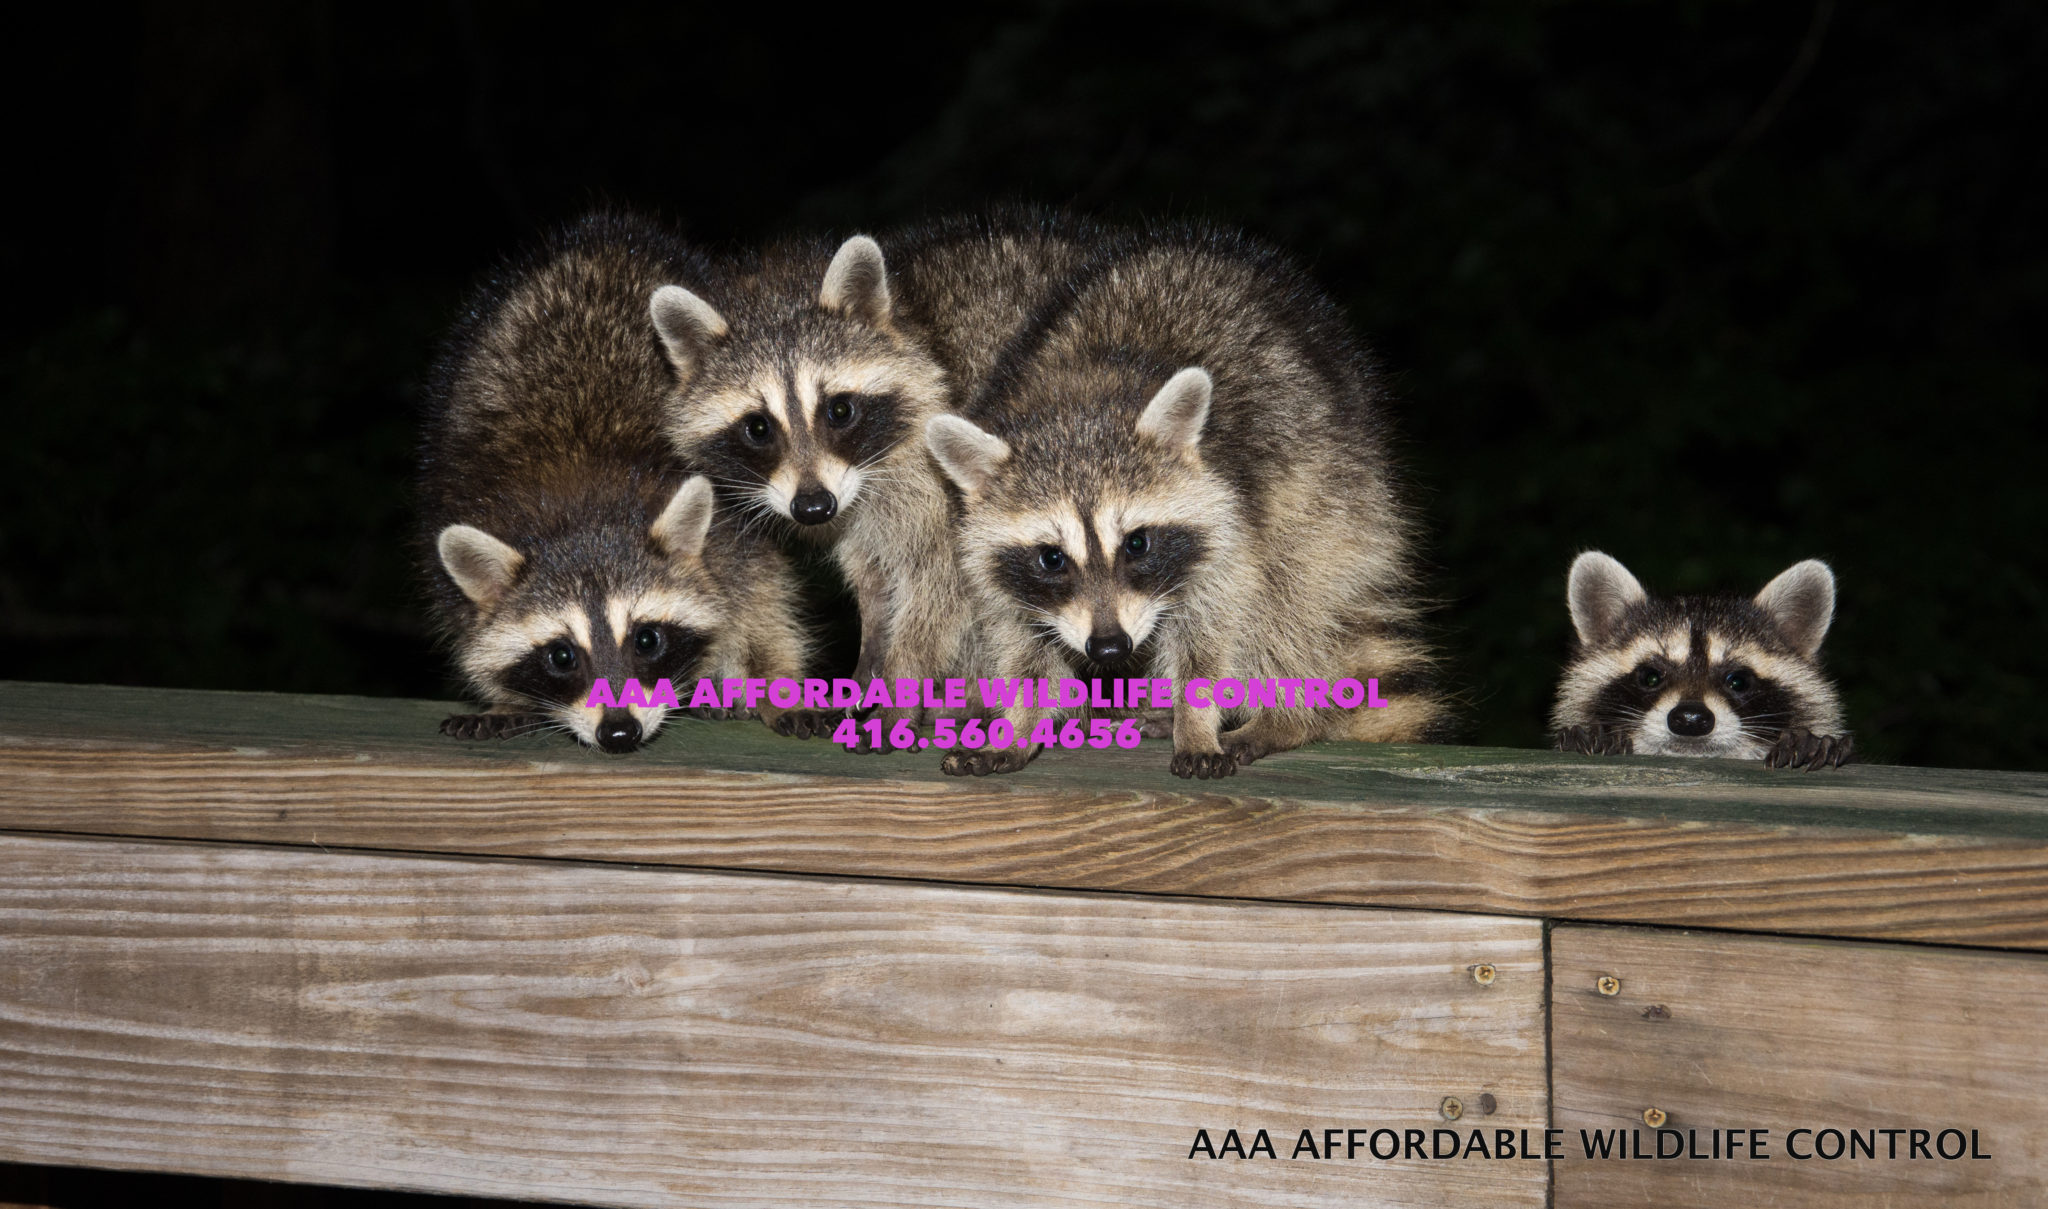 Wildlife Control, Wildlife Removal, Squirrel Removal, Raccoon Removal, Affordable Wildlife Control